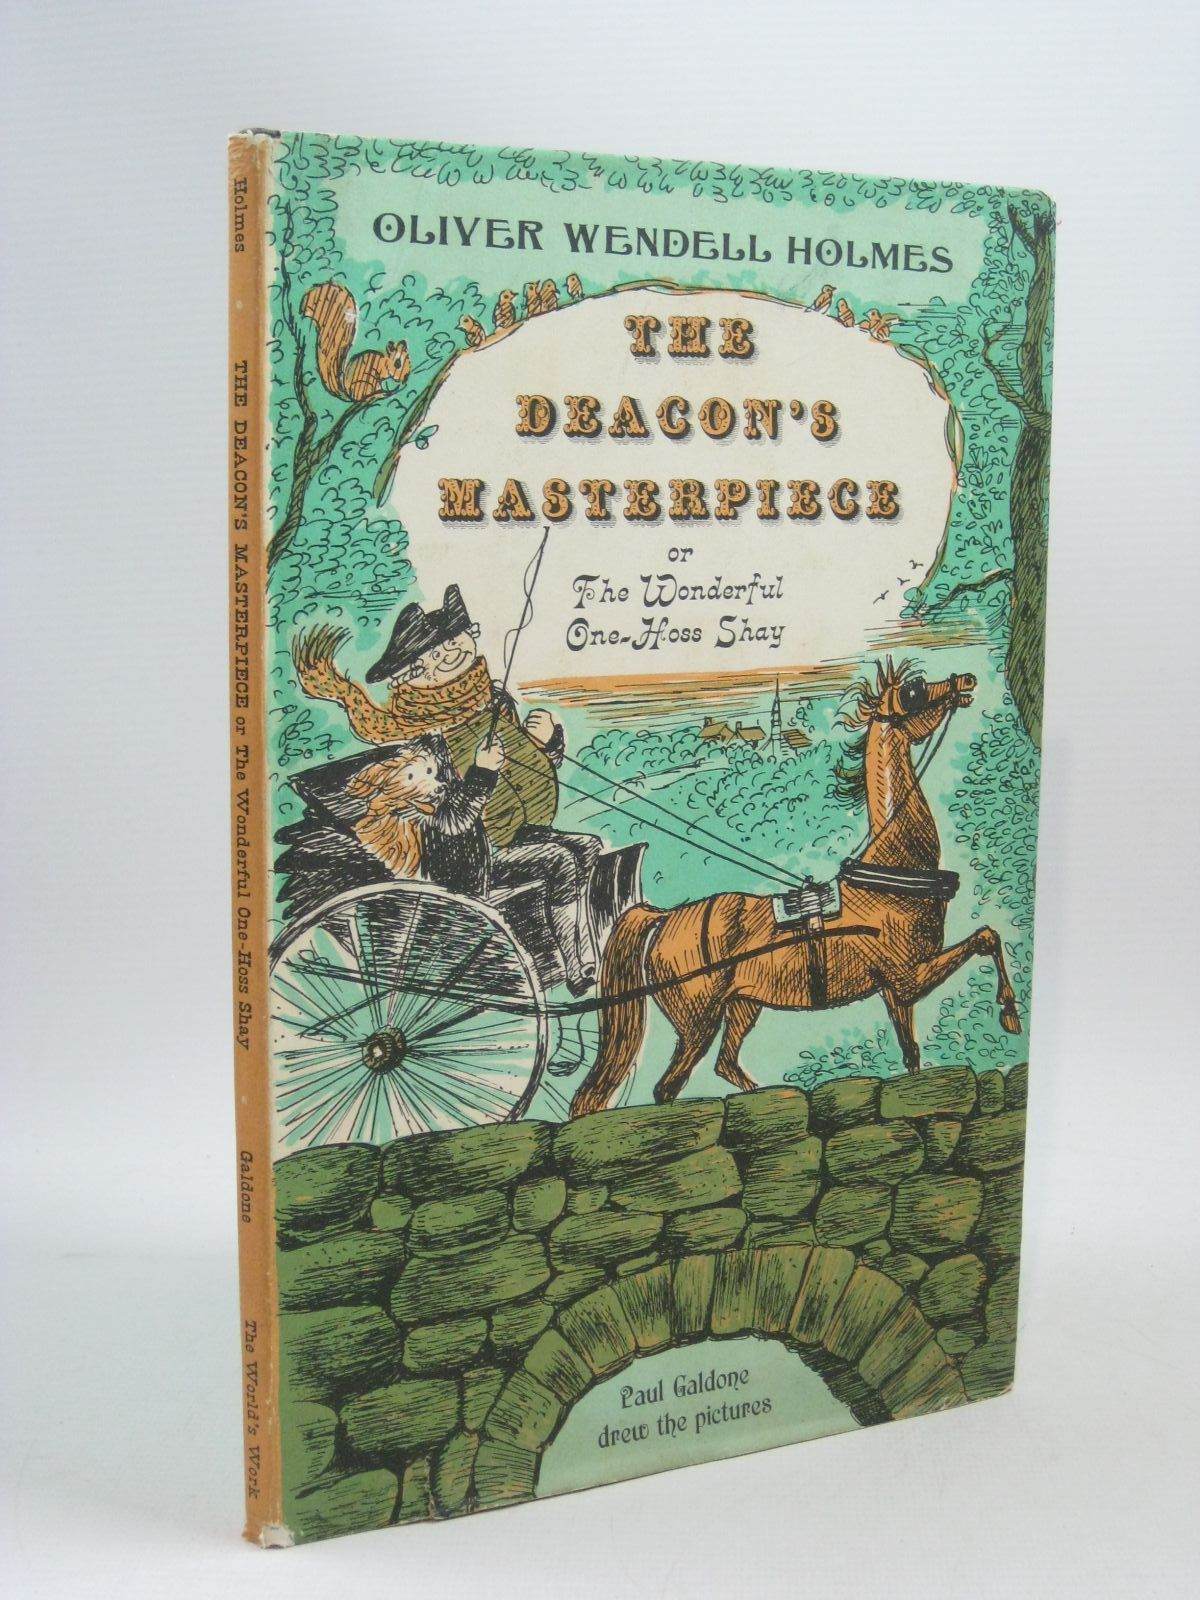 the deacons masterpiece by oliver wendell holmes The project gutenberg ebook of the one hoss shay, by oliver wendell holmes this ebook is for the use of anyone anywhere at no cost and with almost no restrictions whatsoever.